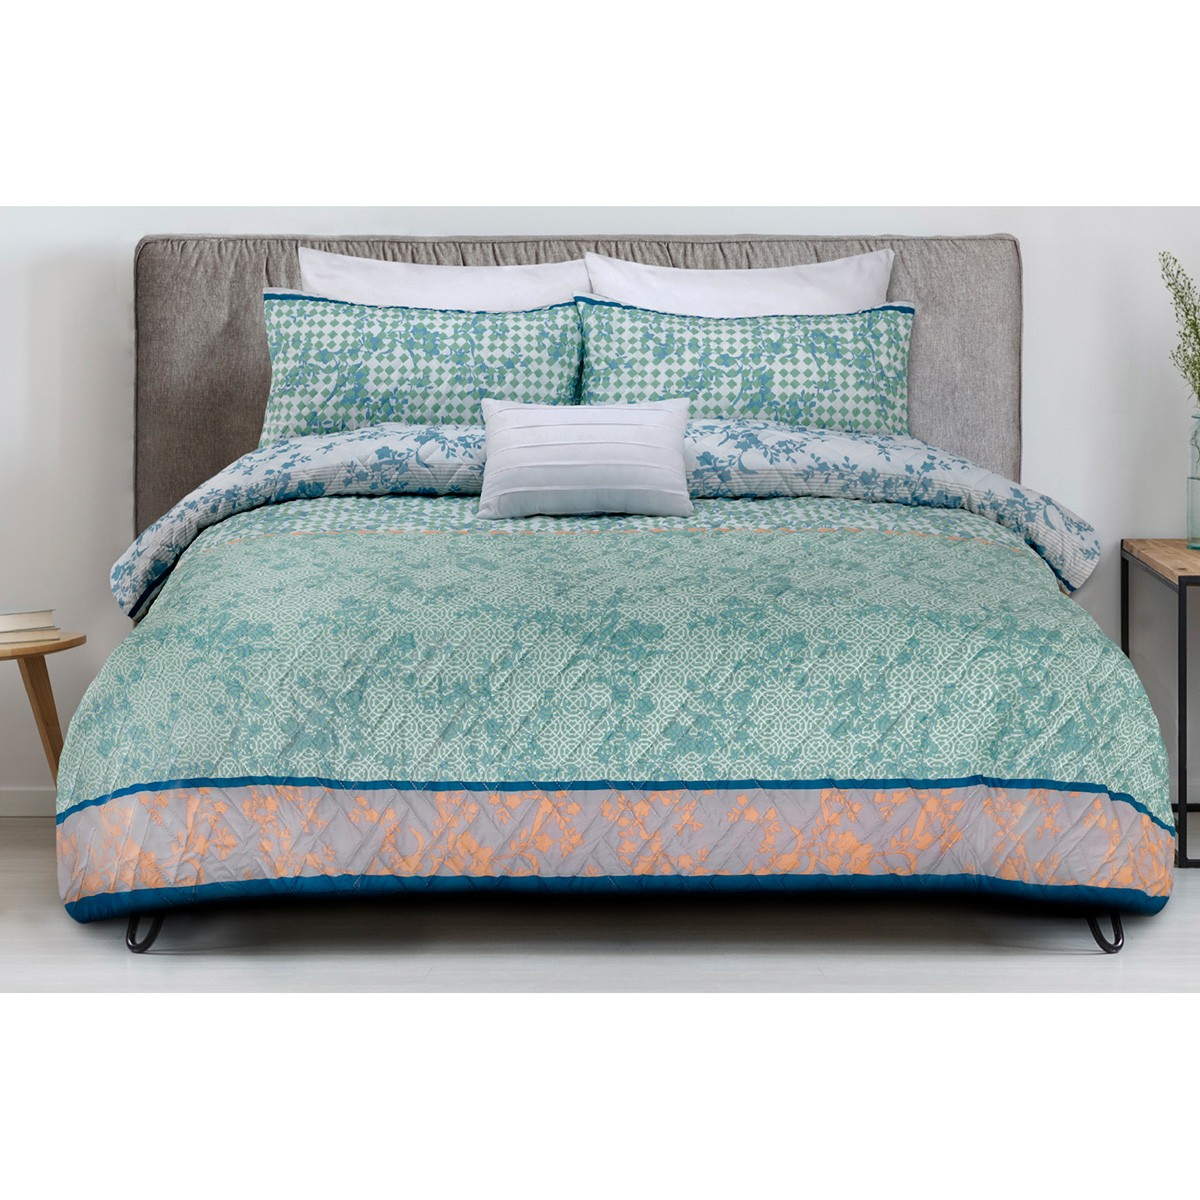 Tangier 3 Piece Printed Embossed Quilt Cover Set, Queen